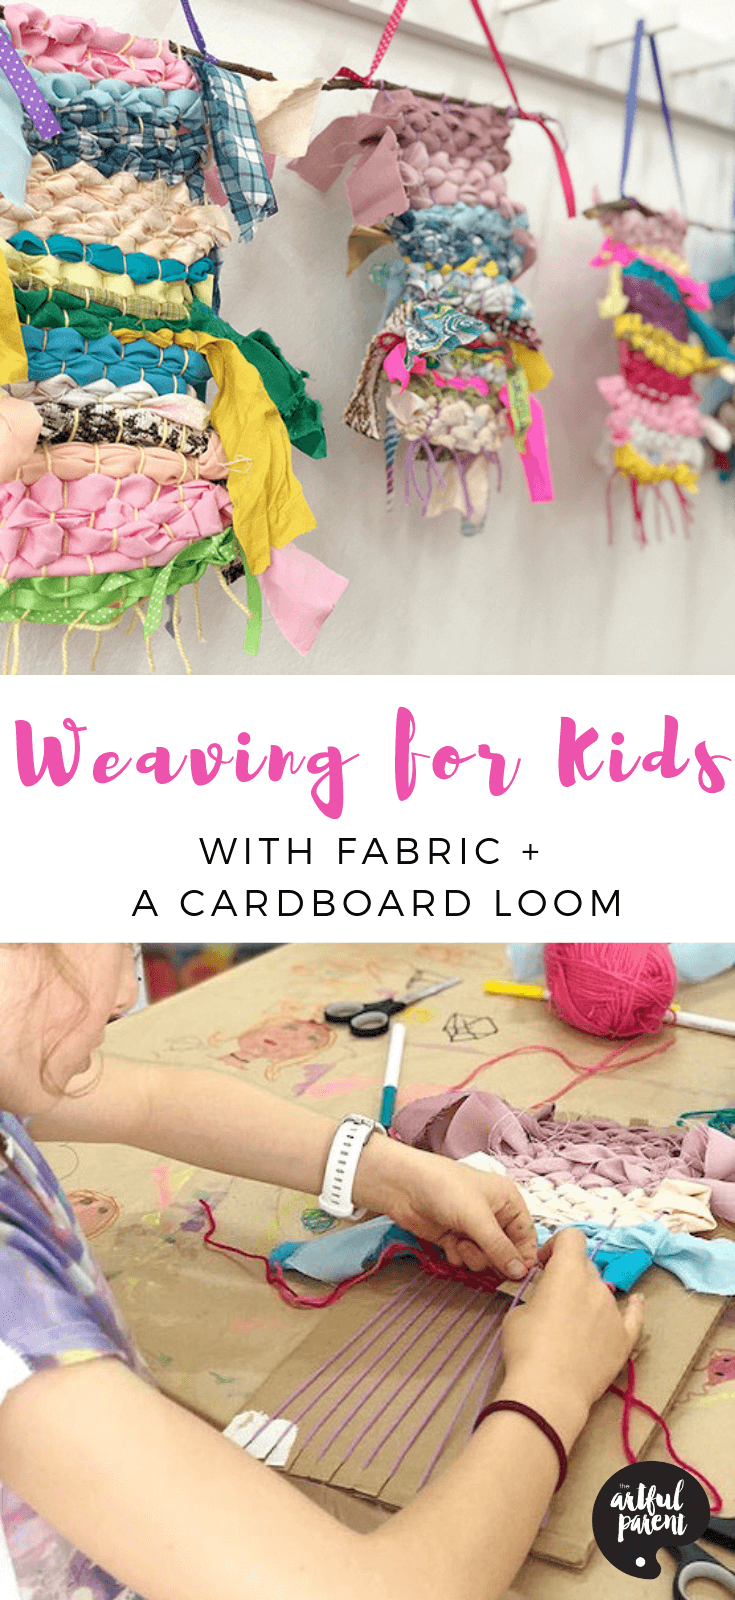 Discover the tactile joy of weaving for kids in this simplified method. Danielle Falk of Little Ginger Studio provides step-by-step instructions to create these beautiful wall hangings with fabric, ribbon and a cardboard loom. #kidsweaving #artsandcrafts #kidscrafts #artsandcraftsforkids #craftsforkids #creativehome